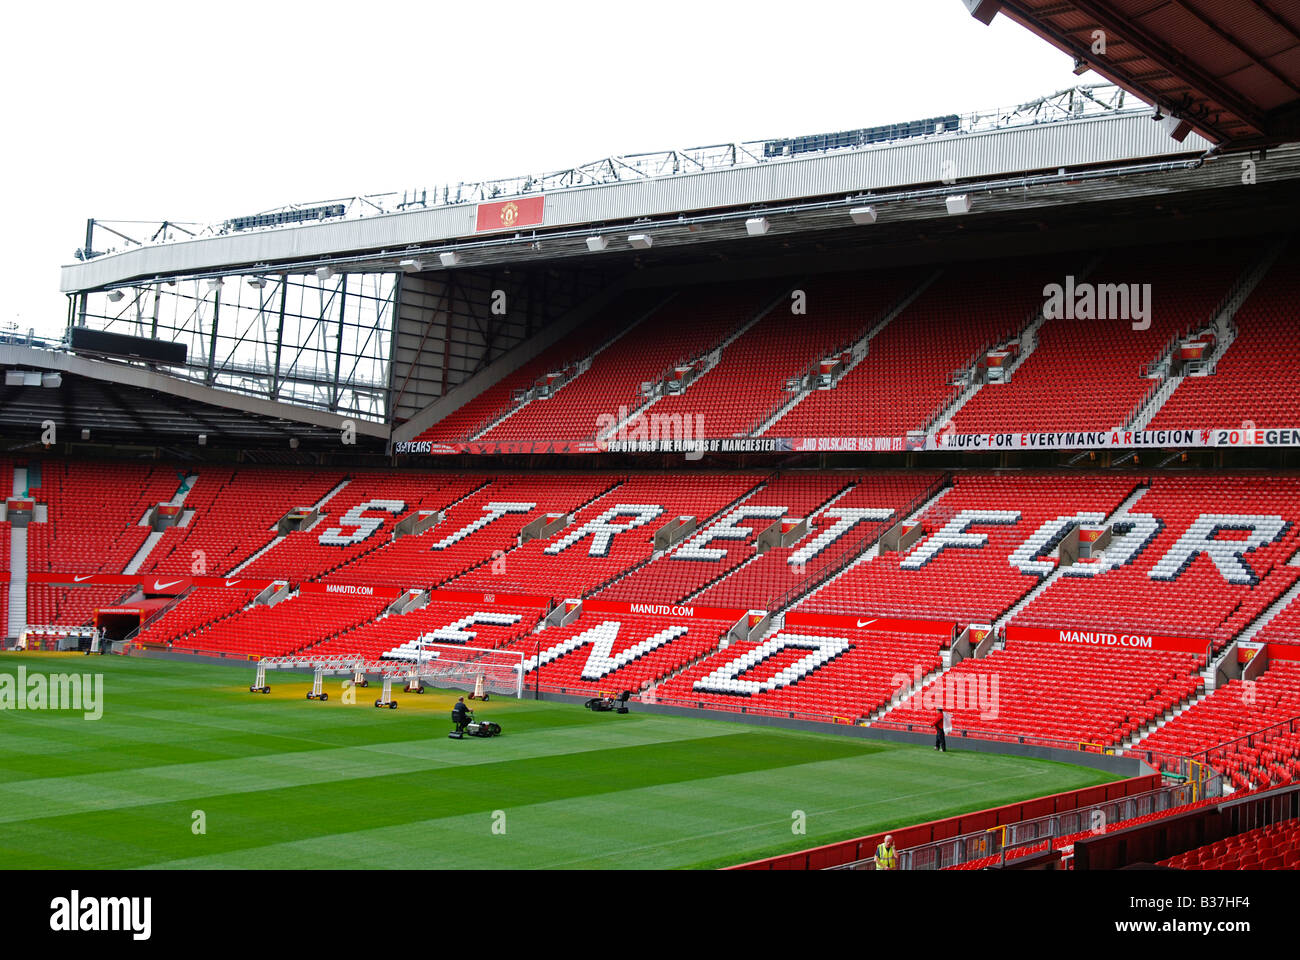 inside an empty stretford end old trafford stadium, home of manchester united football club,england,uk - Stock Image